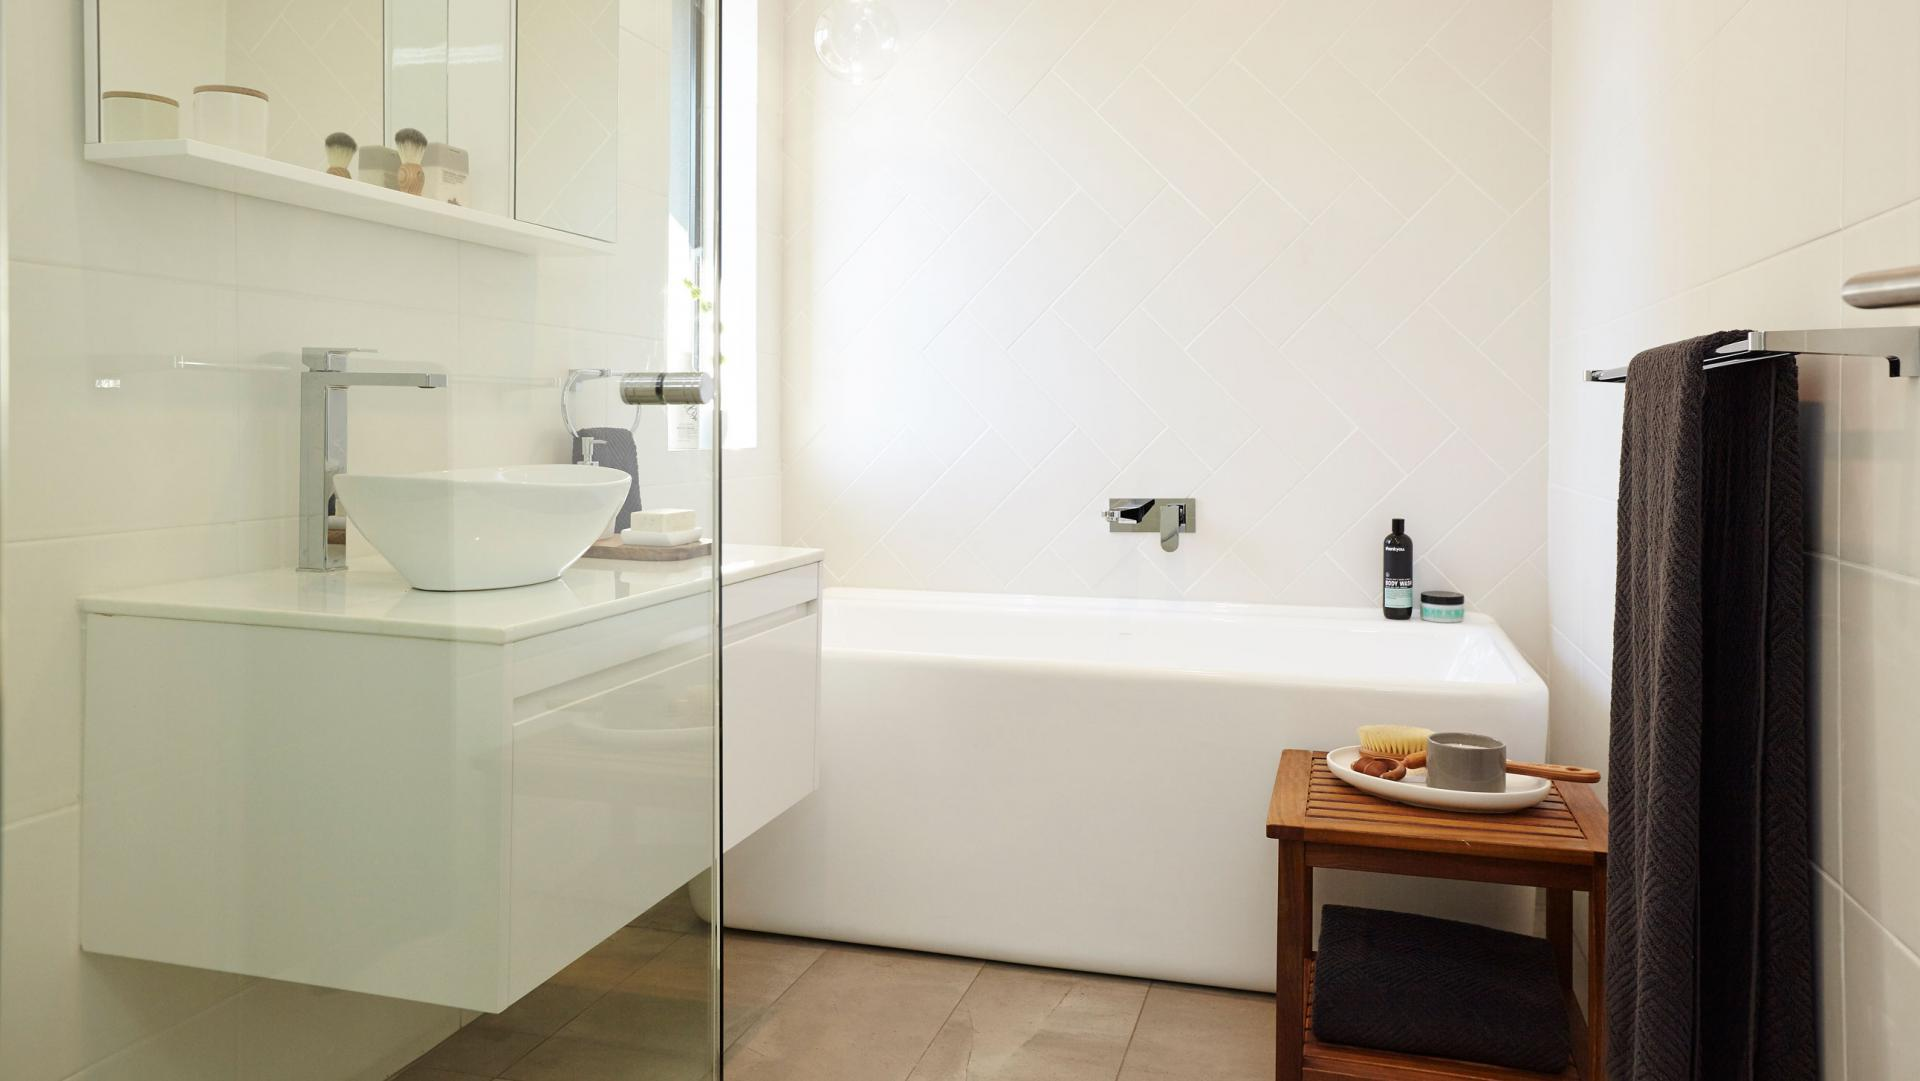 Bathroom Renovations Melbourne Eastern Suburbs | Facelifts ...